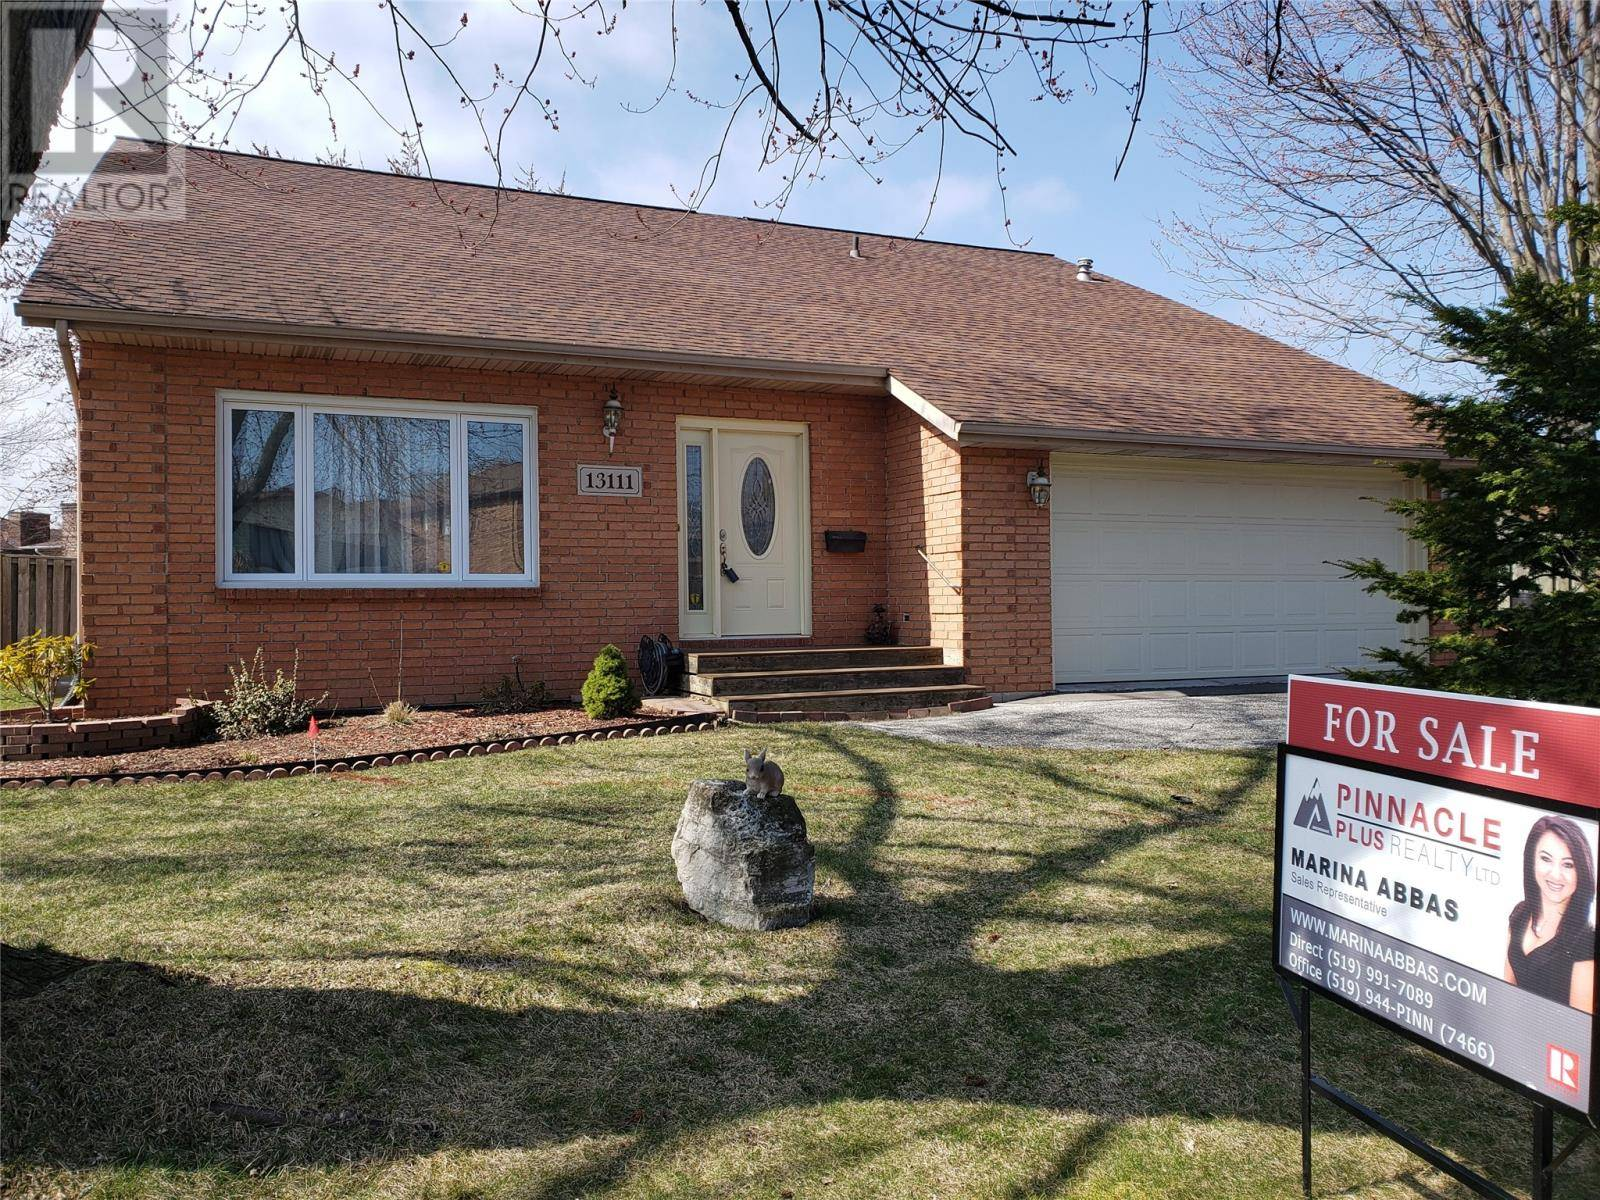 House for sale at 13111 Dillon  Tecumseh Ontario - MLS: 20003694